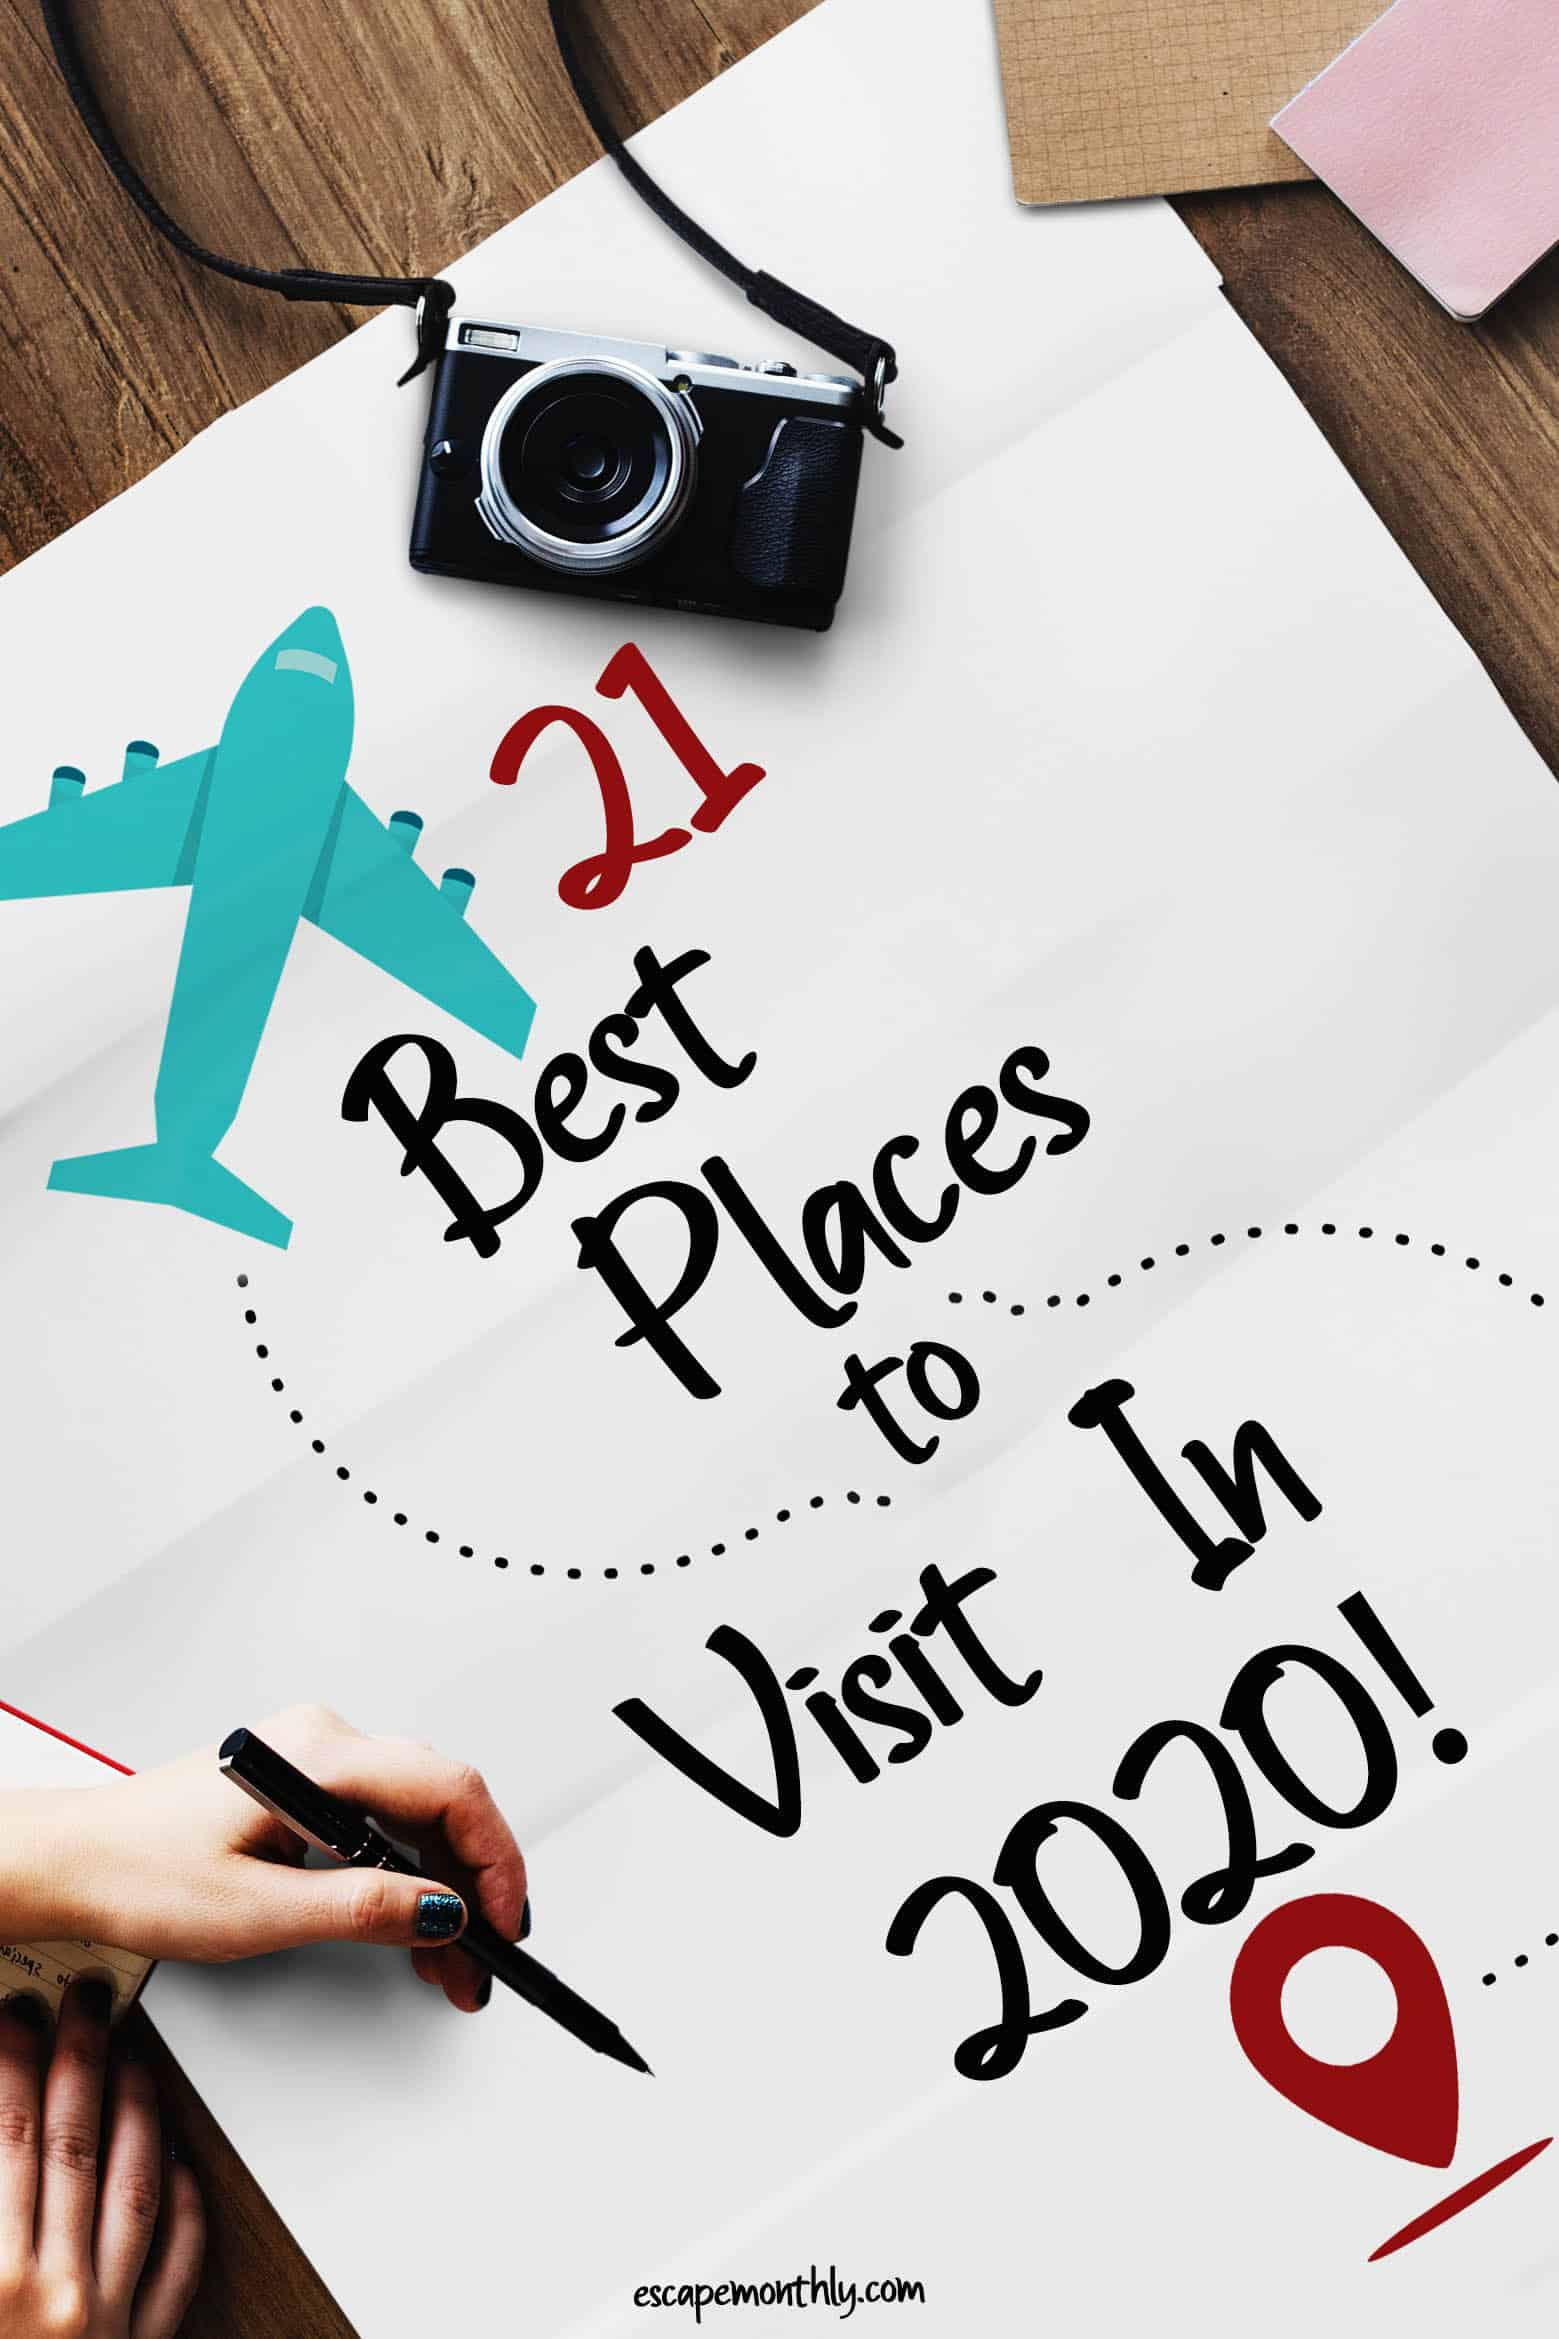 Best places to visit in the World 2020 pin